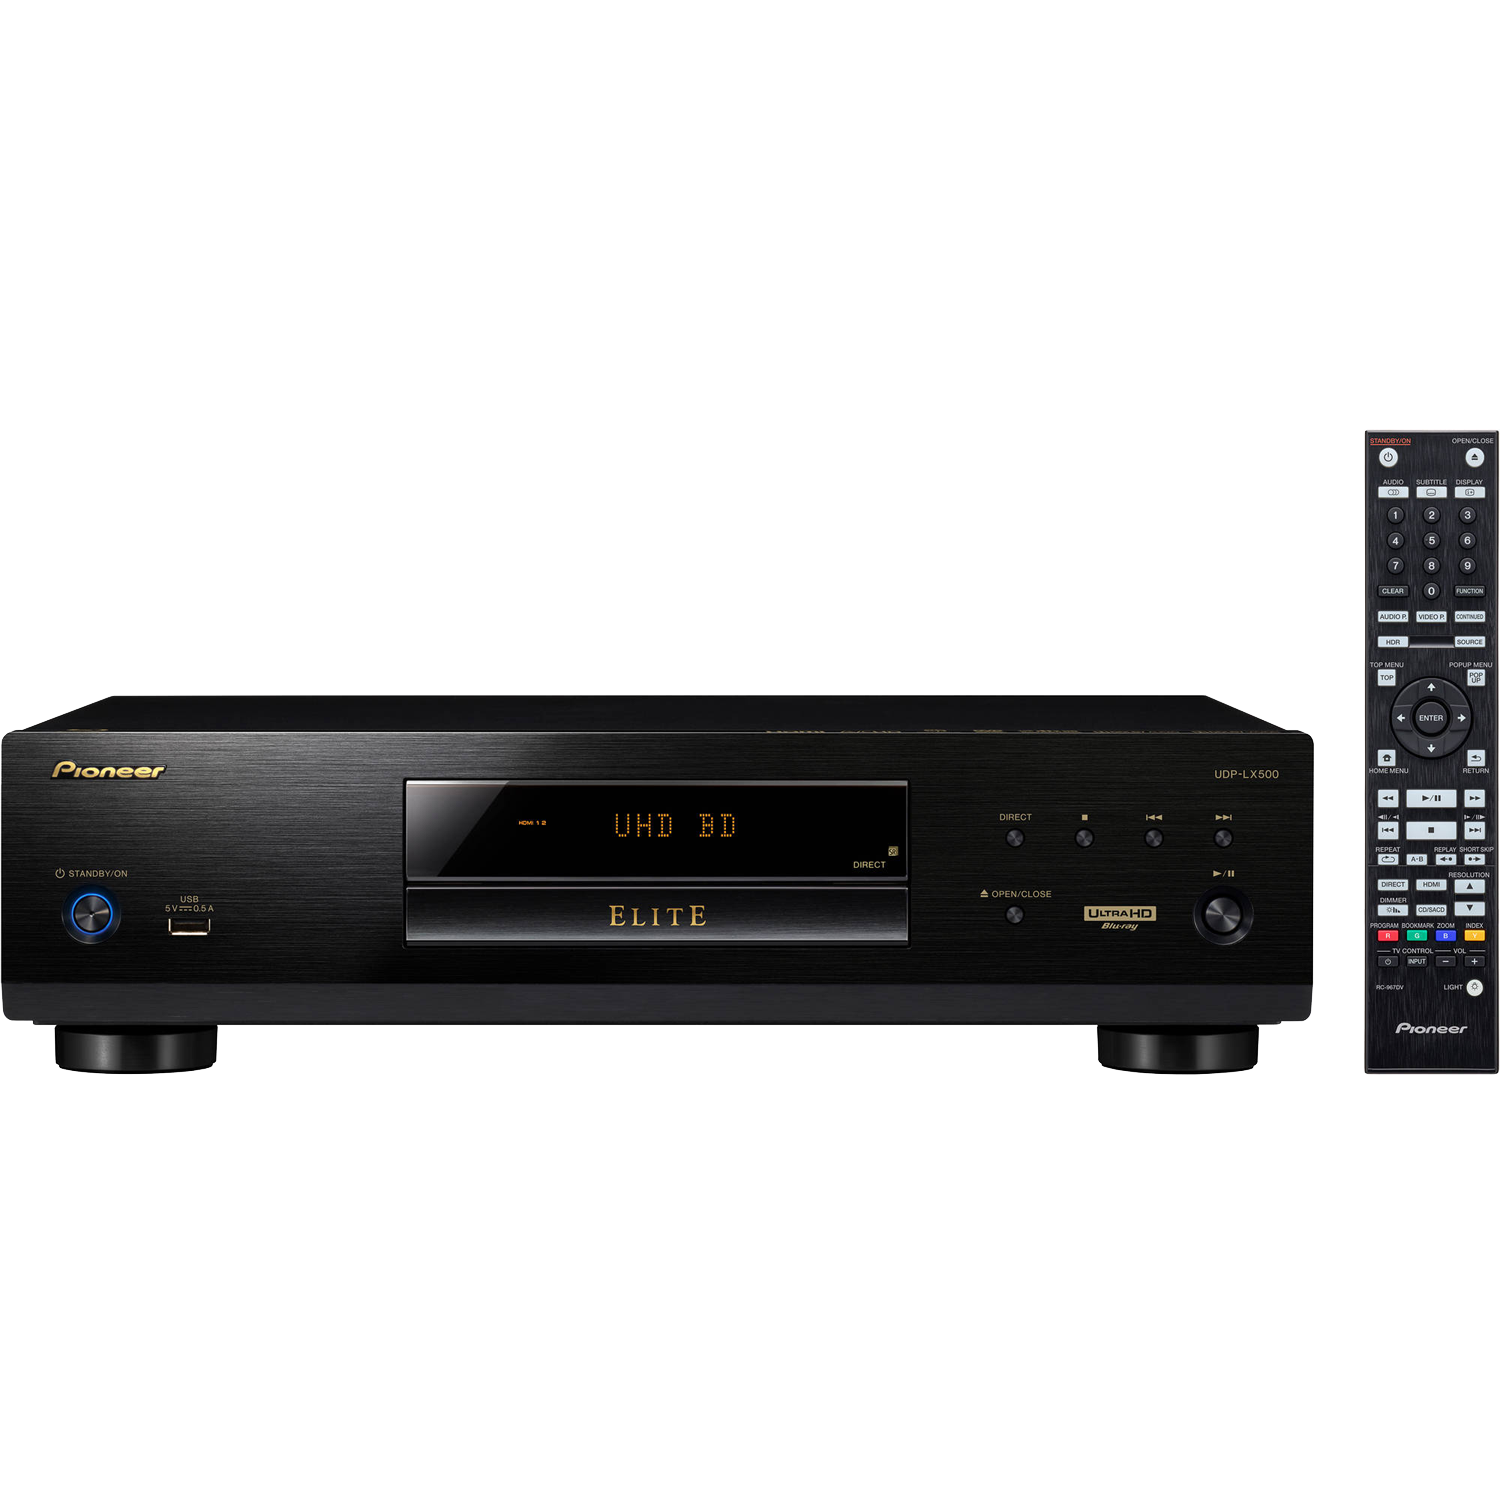 PIONEER UDP-LX500 HDR UHD 4K Blu-ray Disc Player